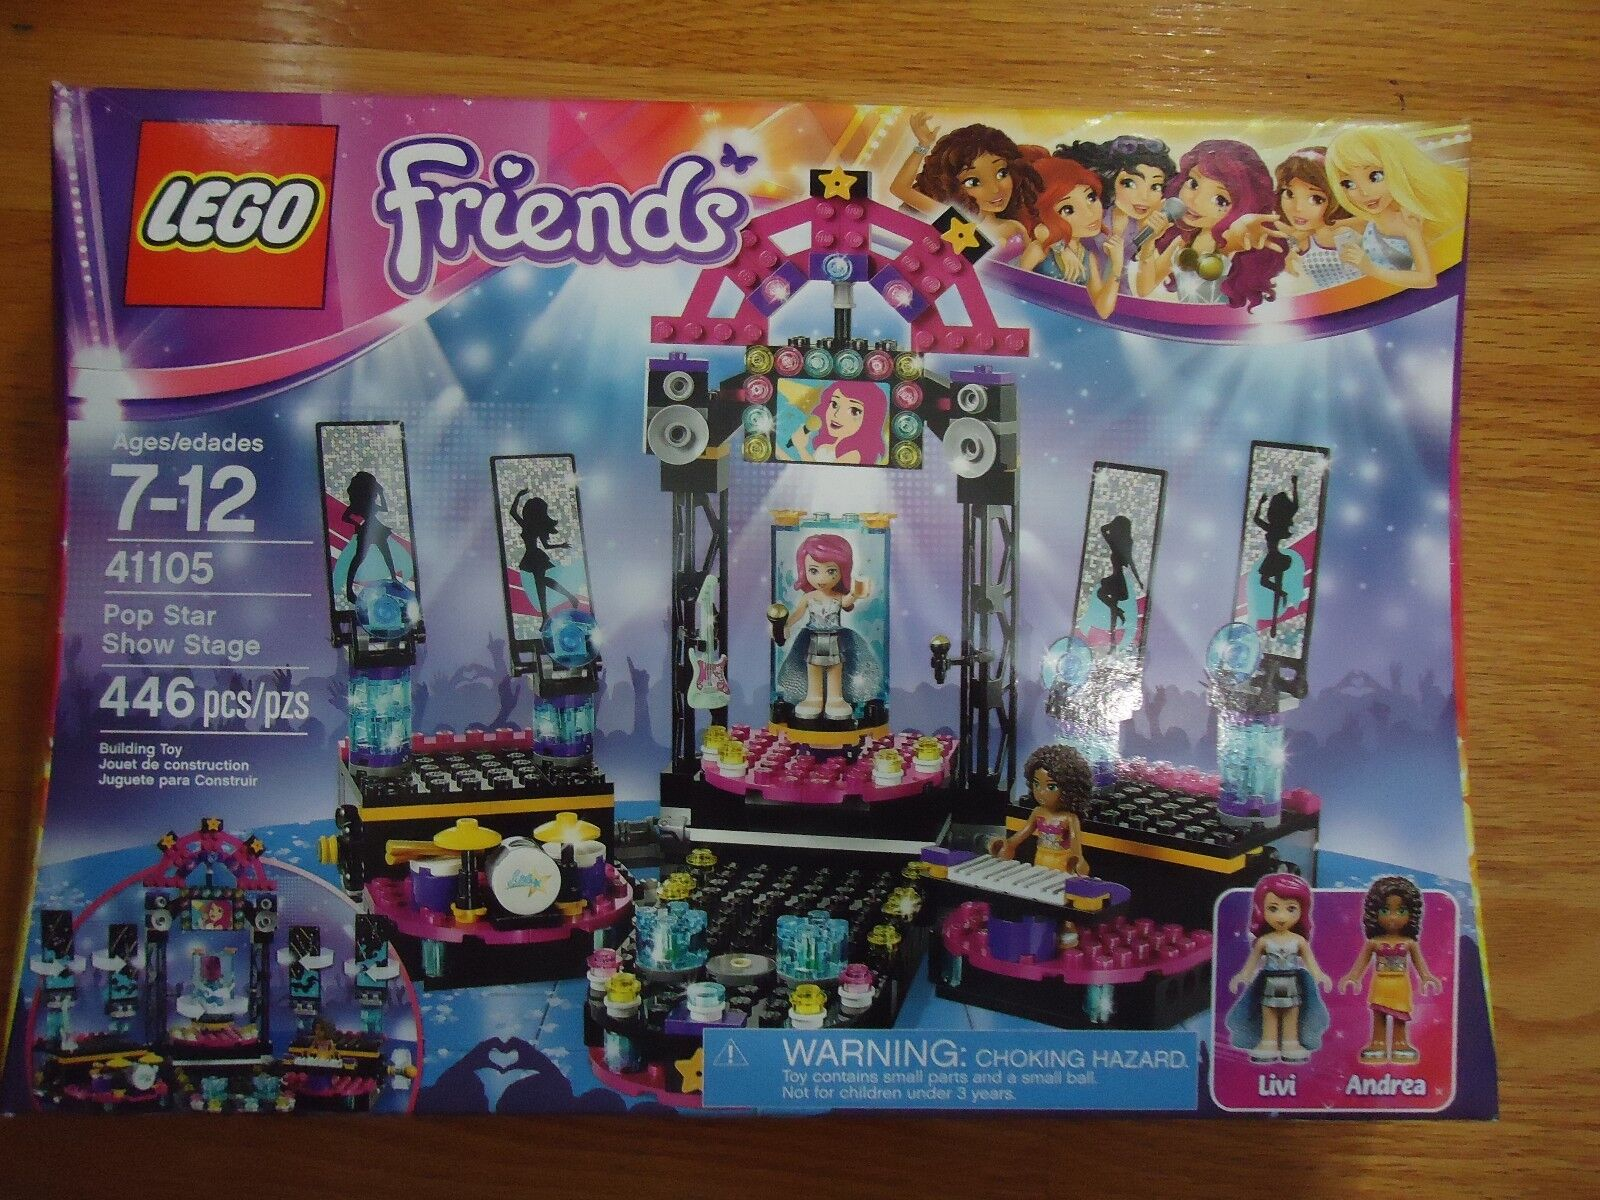 LEGO FRIENDS POP STAR SHOW STAGE AGES 7-12 BRAND NEW SEALED 41105